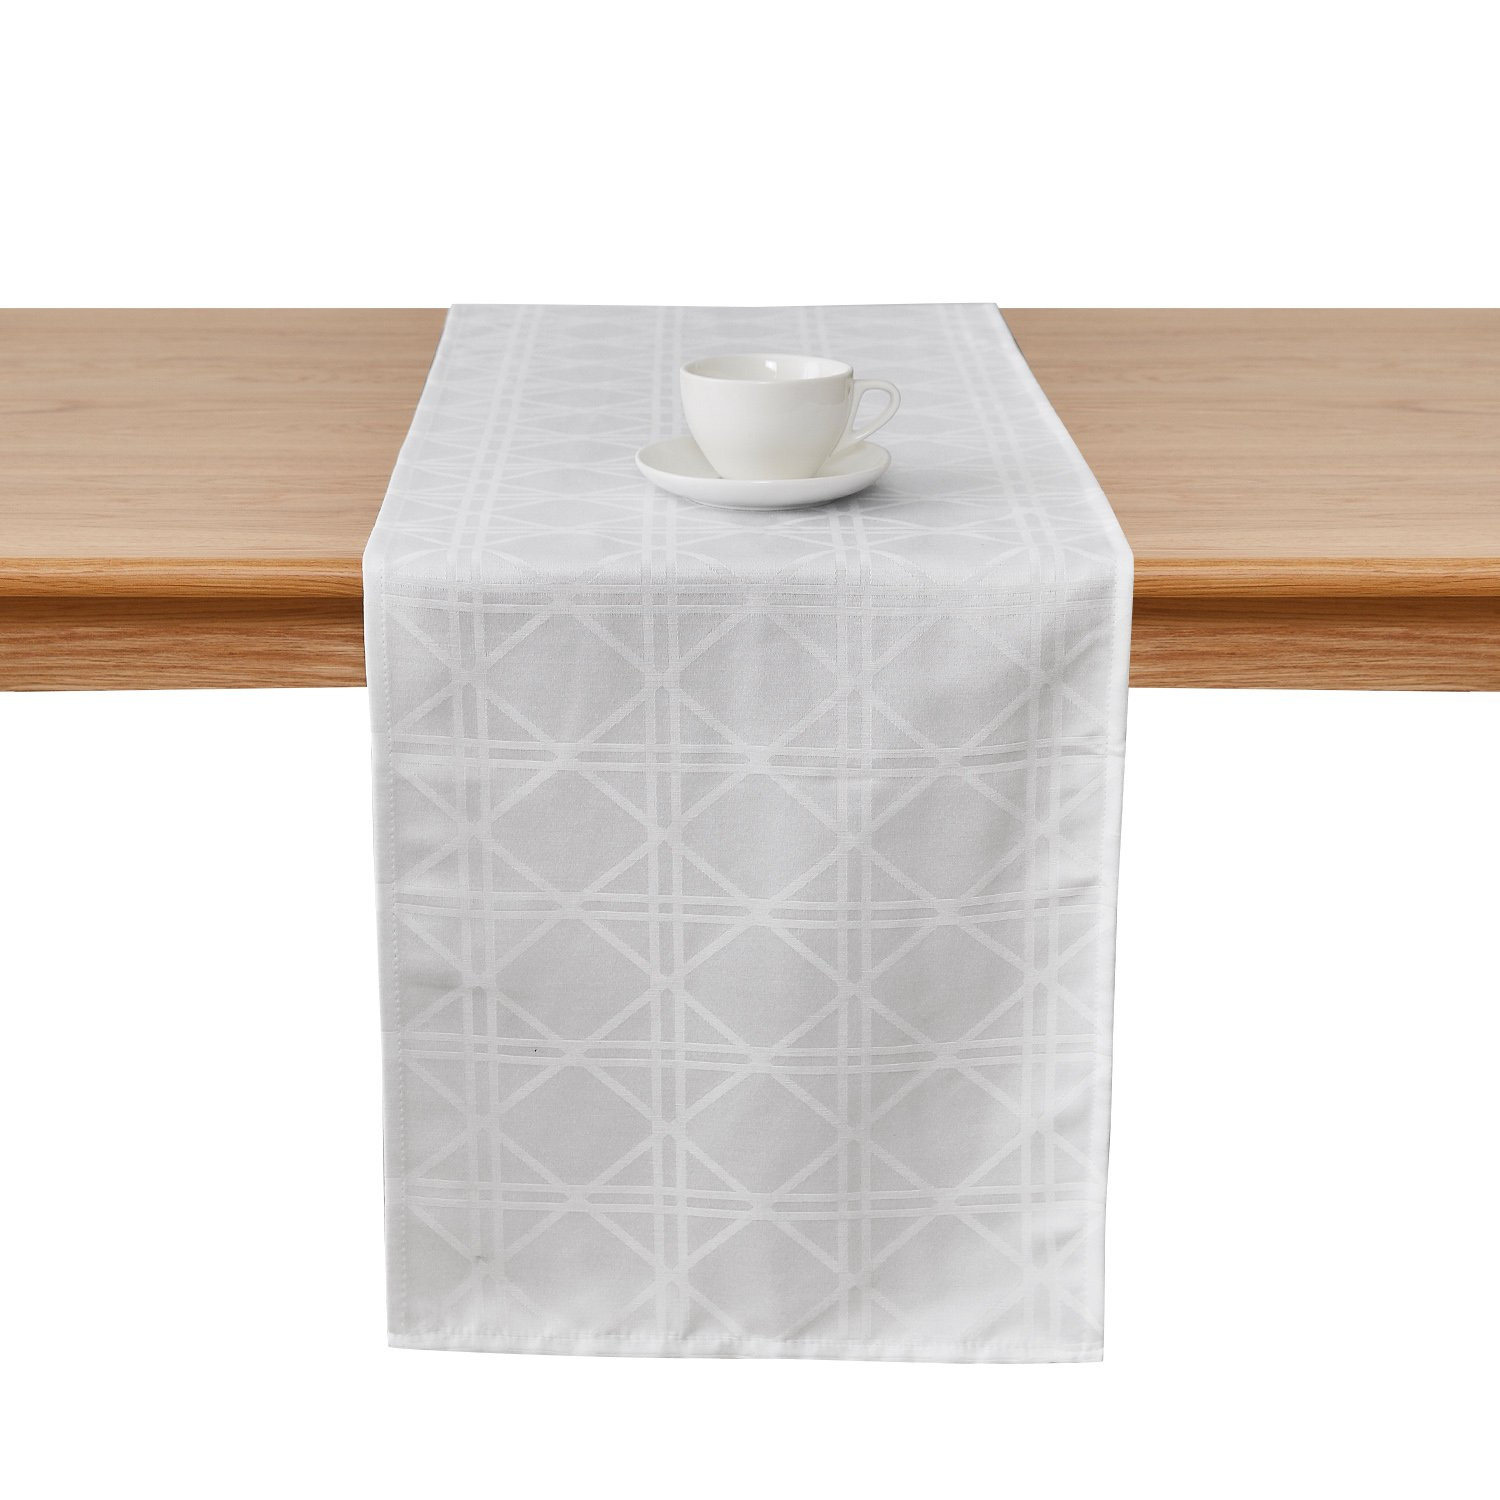 Deconovo Jacquard Damask White Table Runner Wrinkle and Water Resistant Spill-Proof Decorative Dining and Wedding Runners with Geometric Patterns 14 x 72 inch